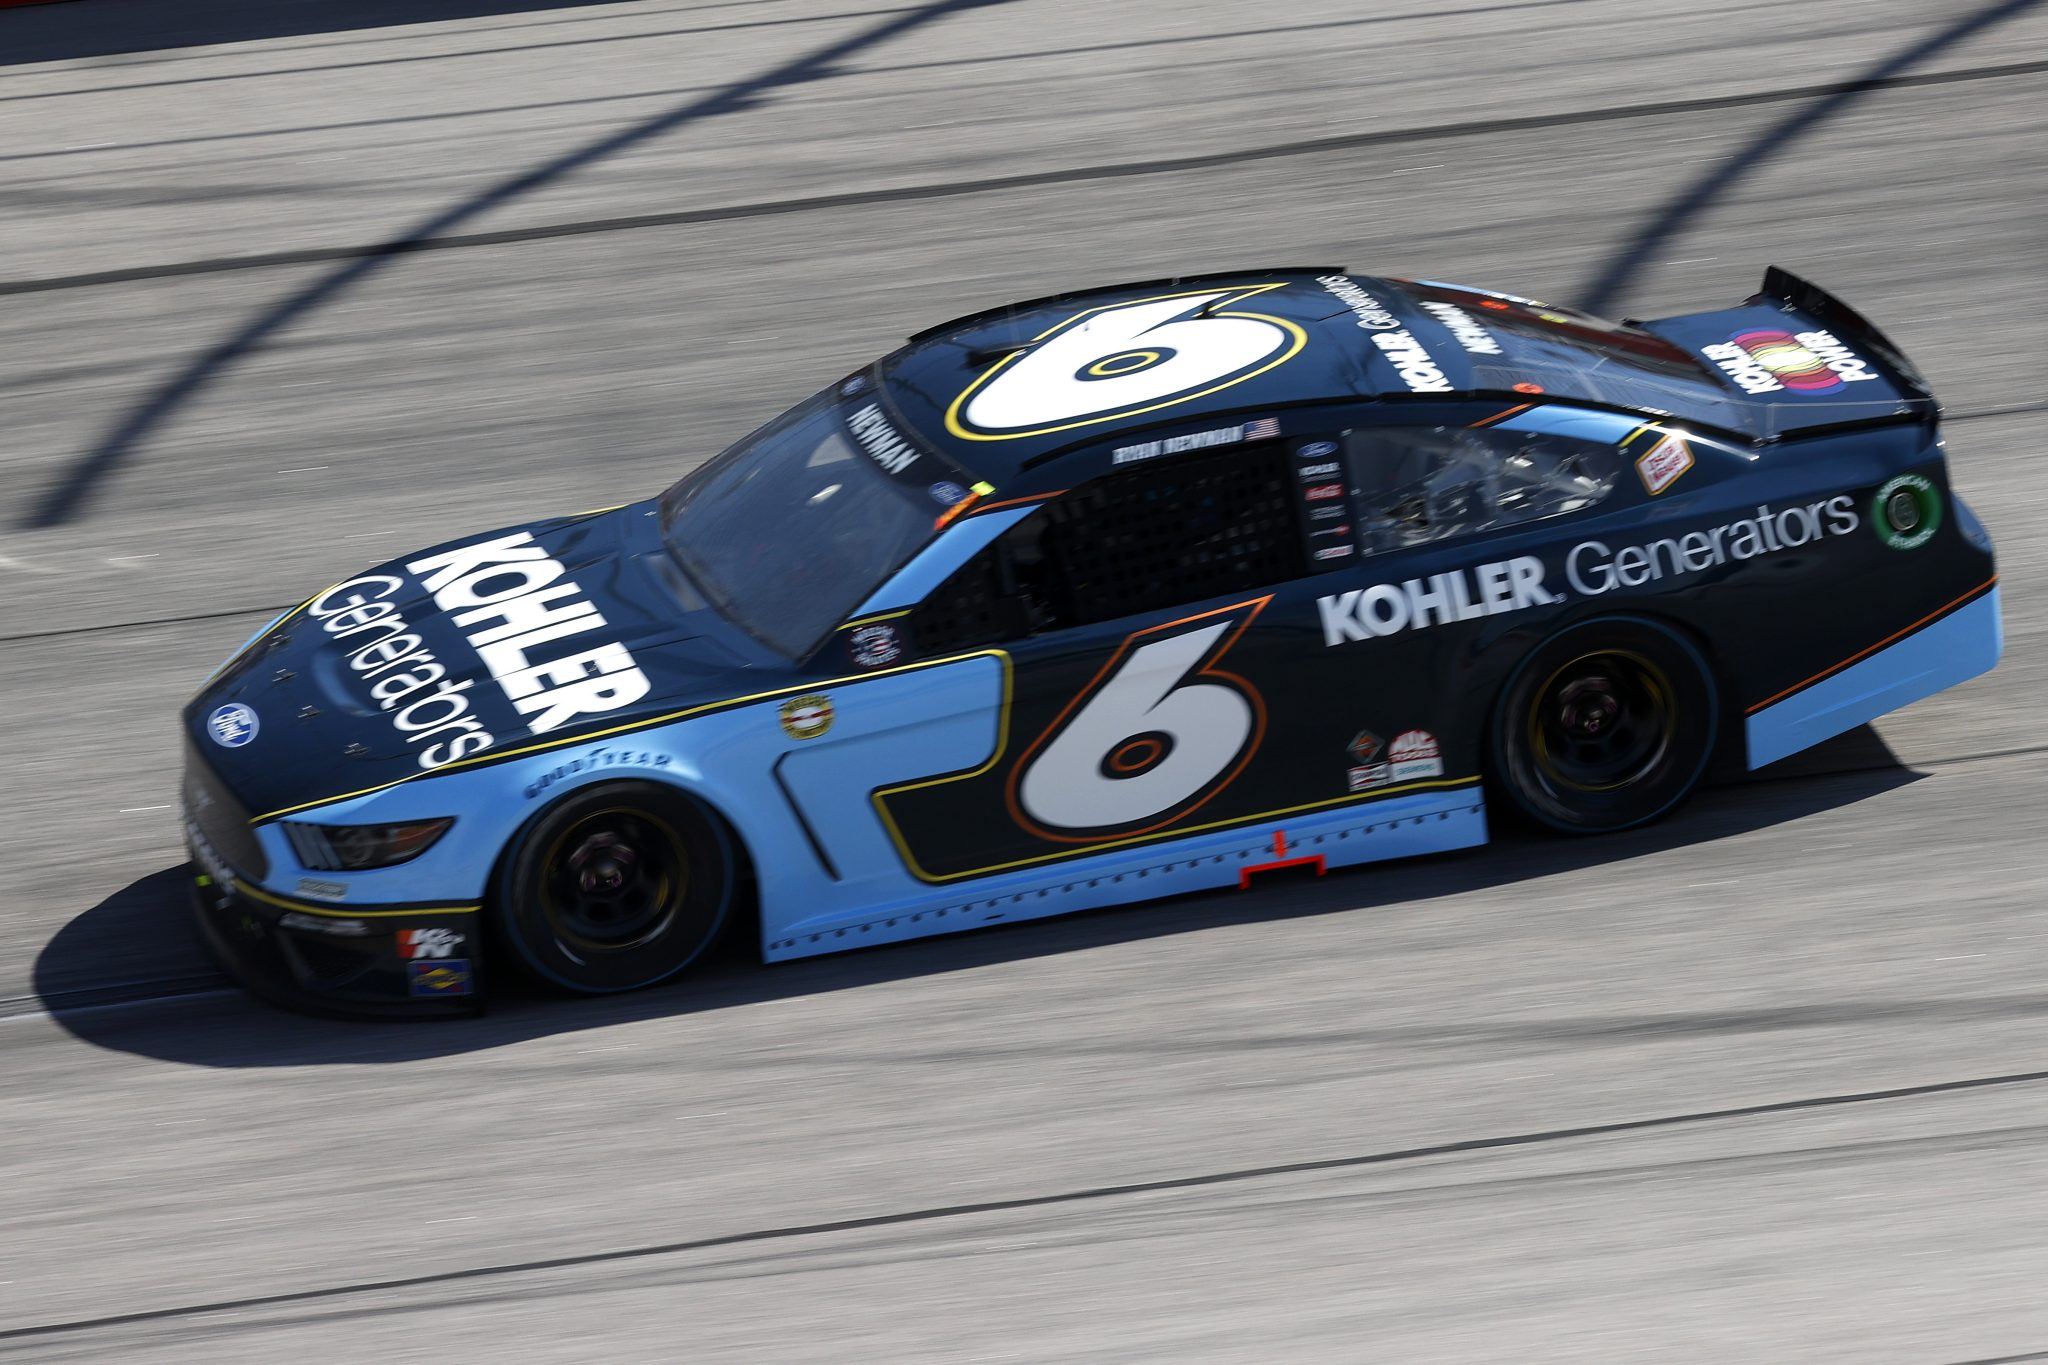 DARLINGTON, SOUTH CAROLINA - MAY 09: Ryan Newman, driver of the #6 Kohler Generators Ford, drives during the NASCAR Cup Series Goodyear 400 at Darlington Raceway on May 09, 2021 in Darlington, South Carolina. (Photo by Chris Graythen/Getty Images) | Getty Images